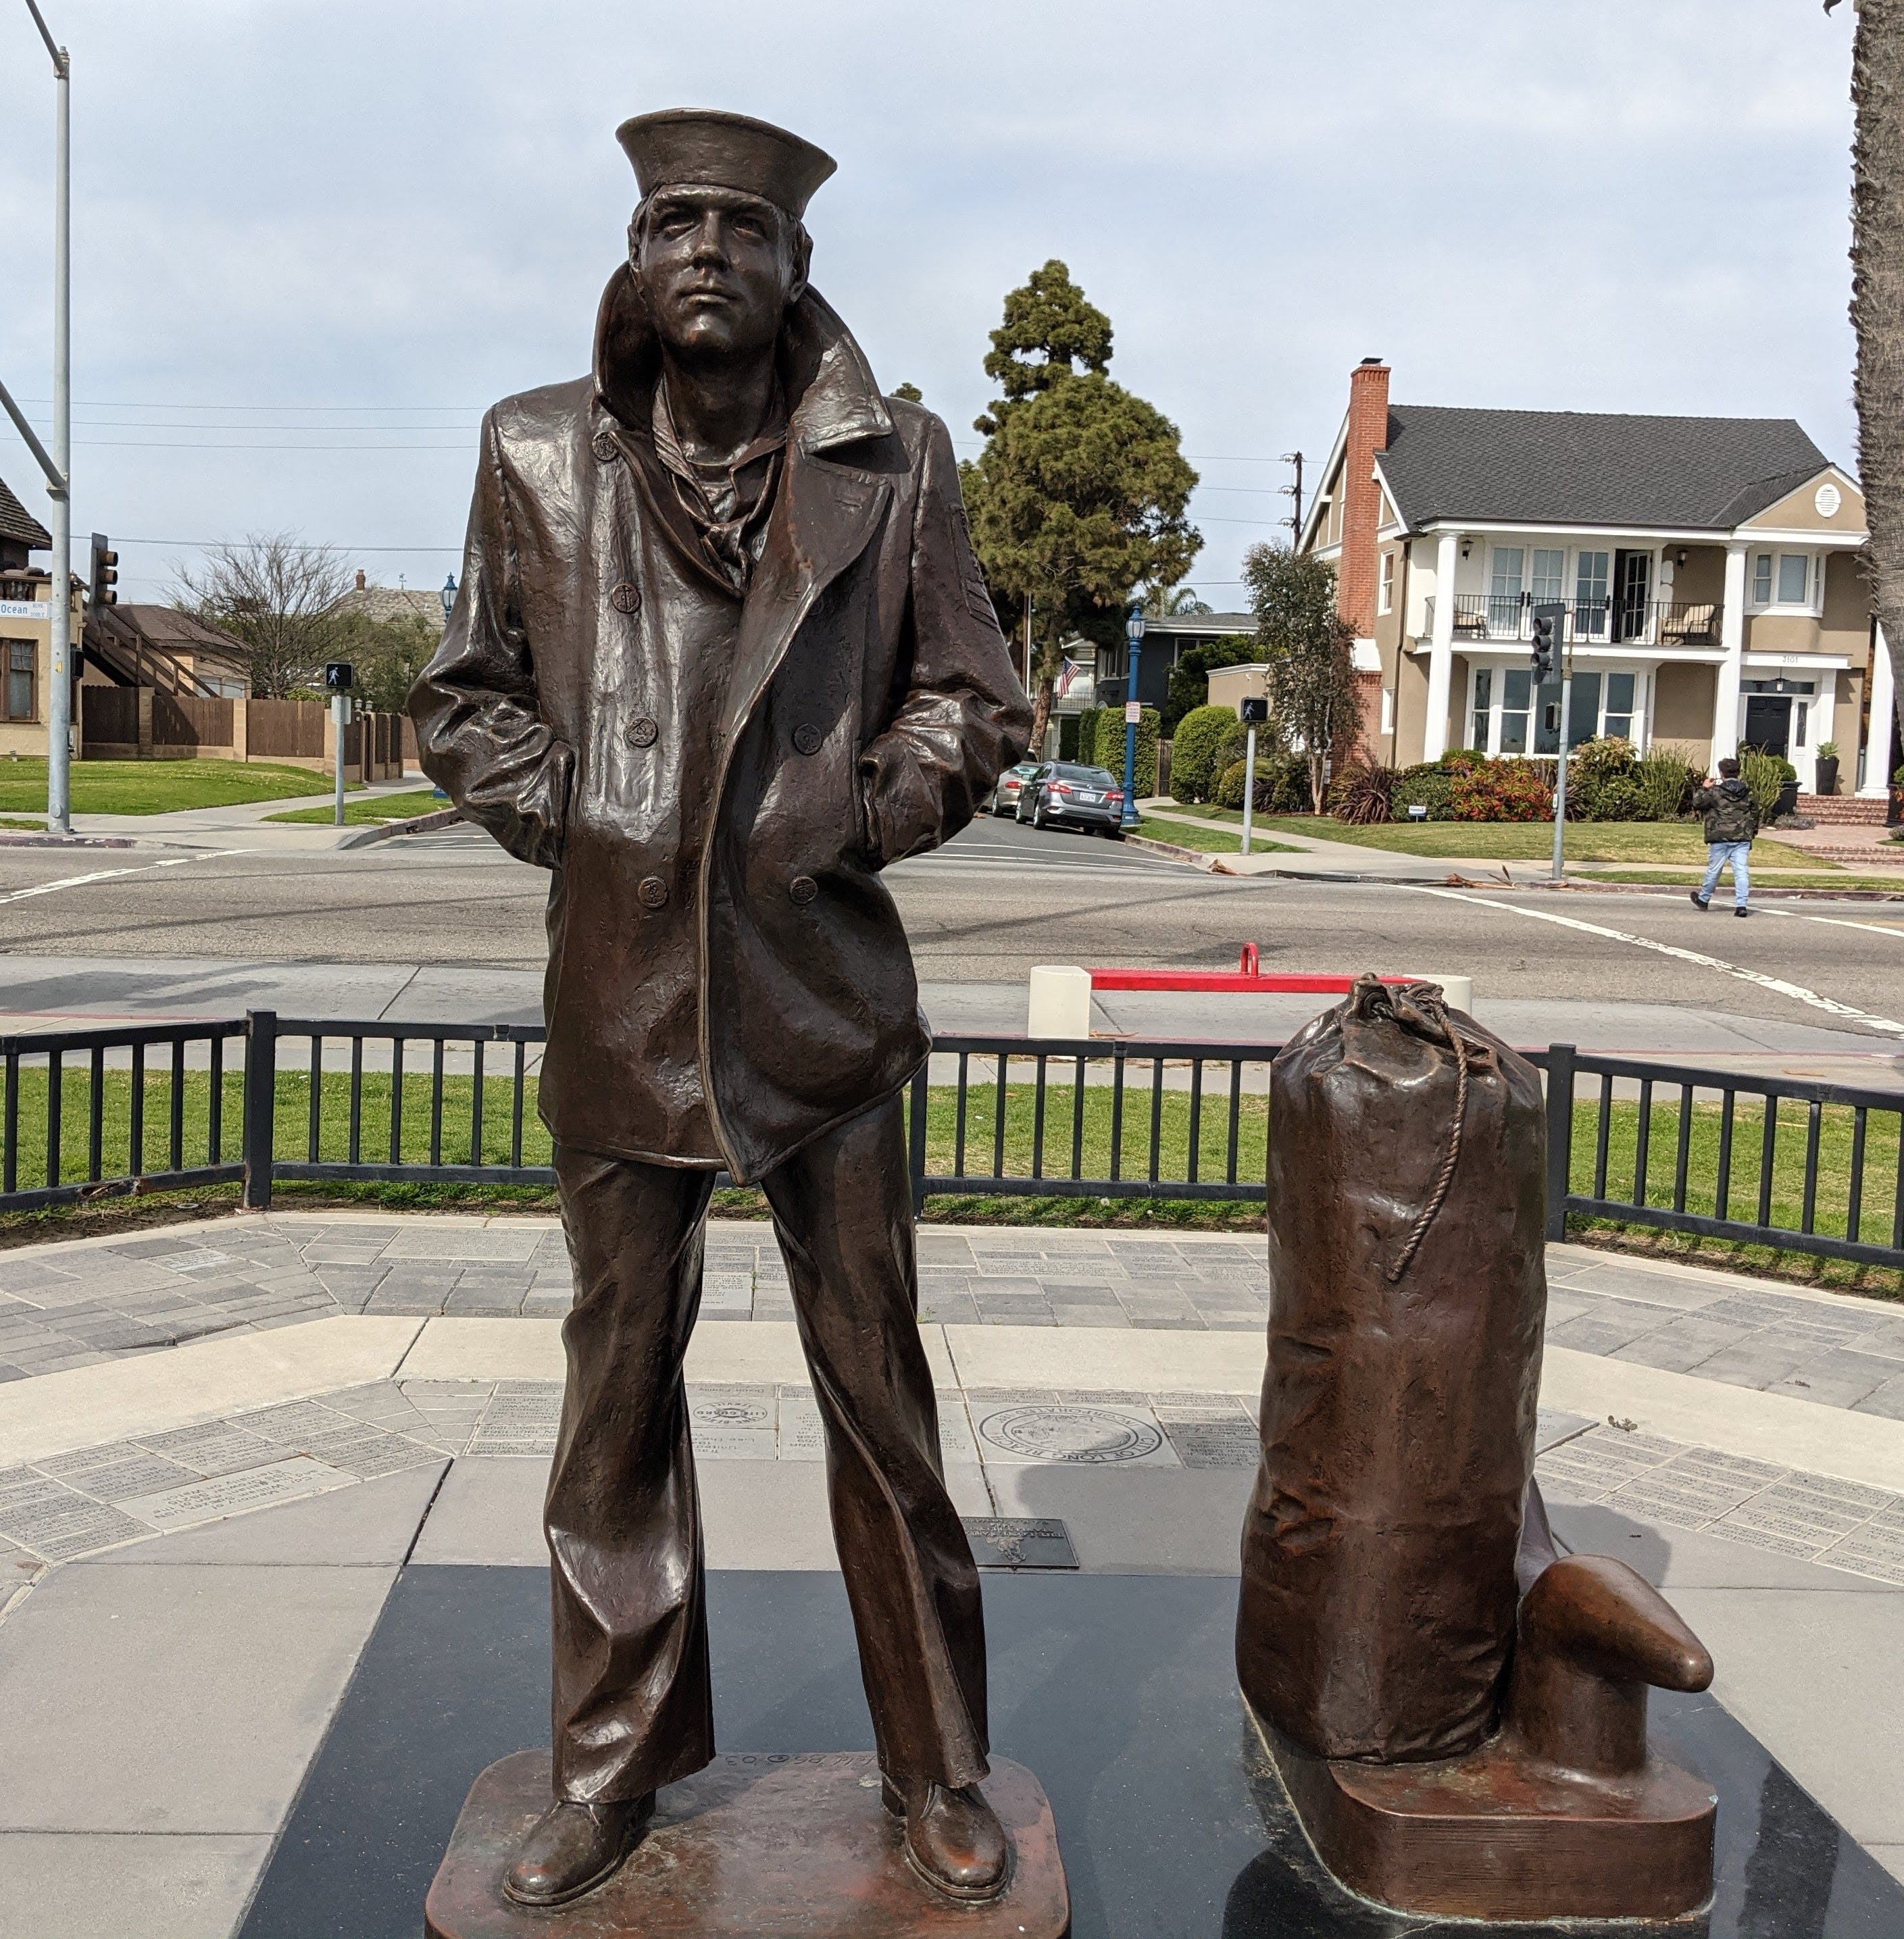 The Lone Sailor sculpture in Long Beach